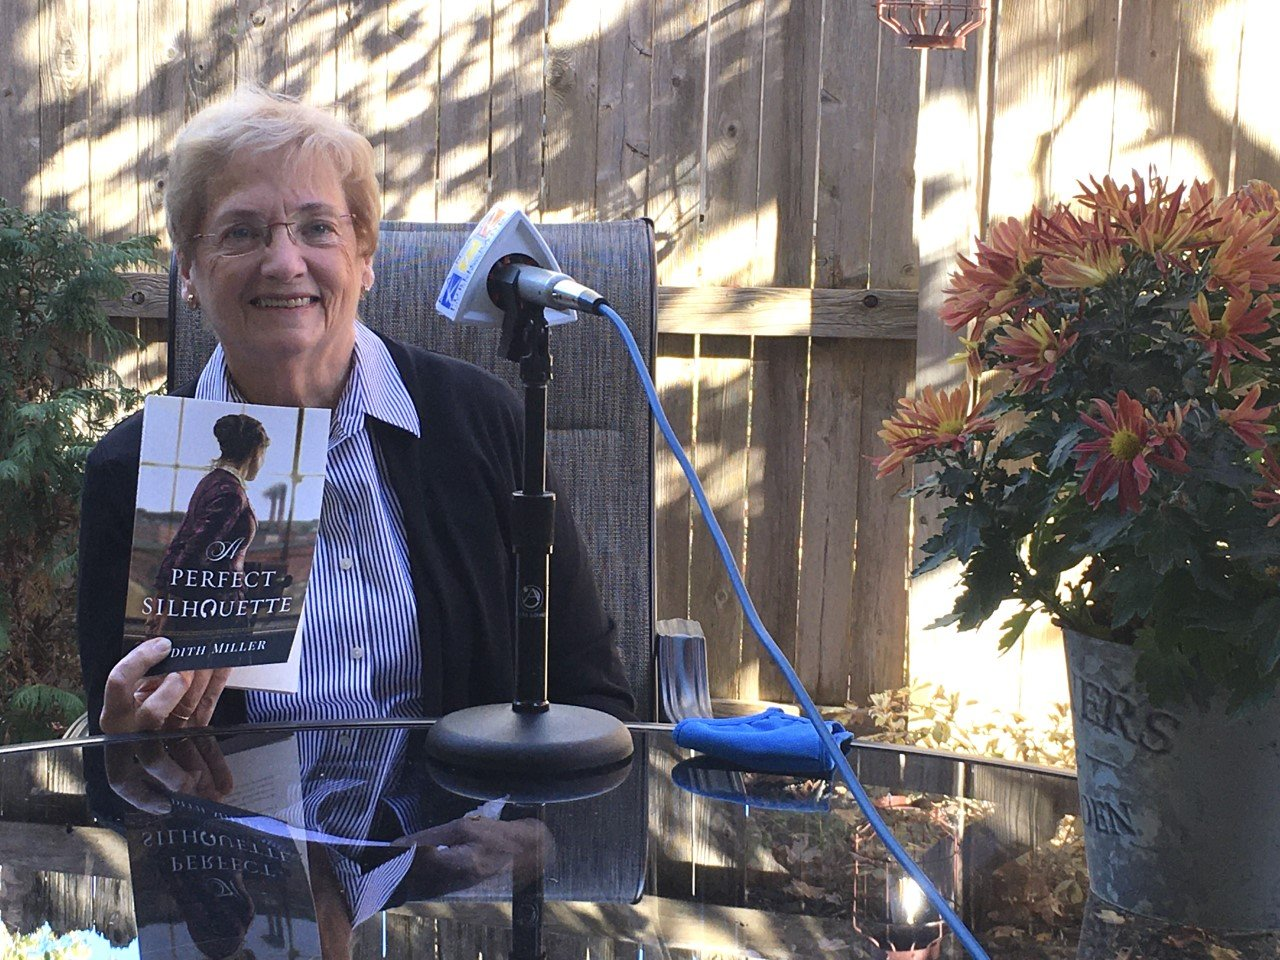 Photo of Judith McCoy Miller with book